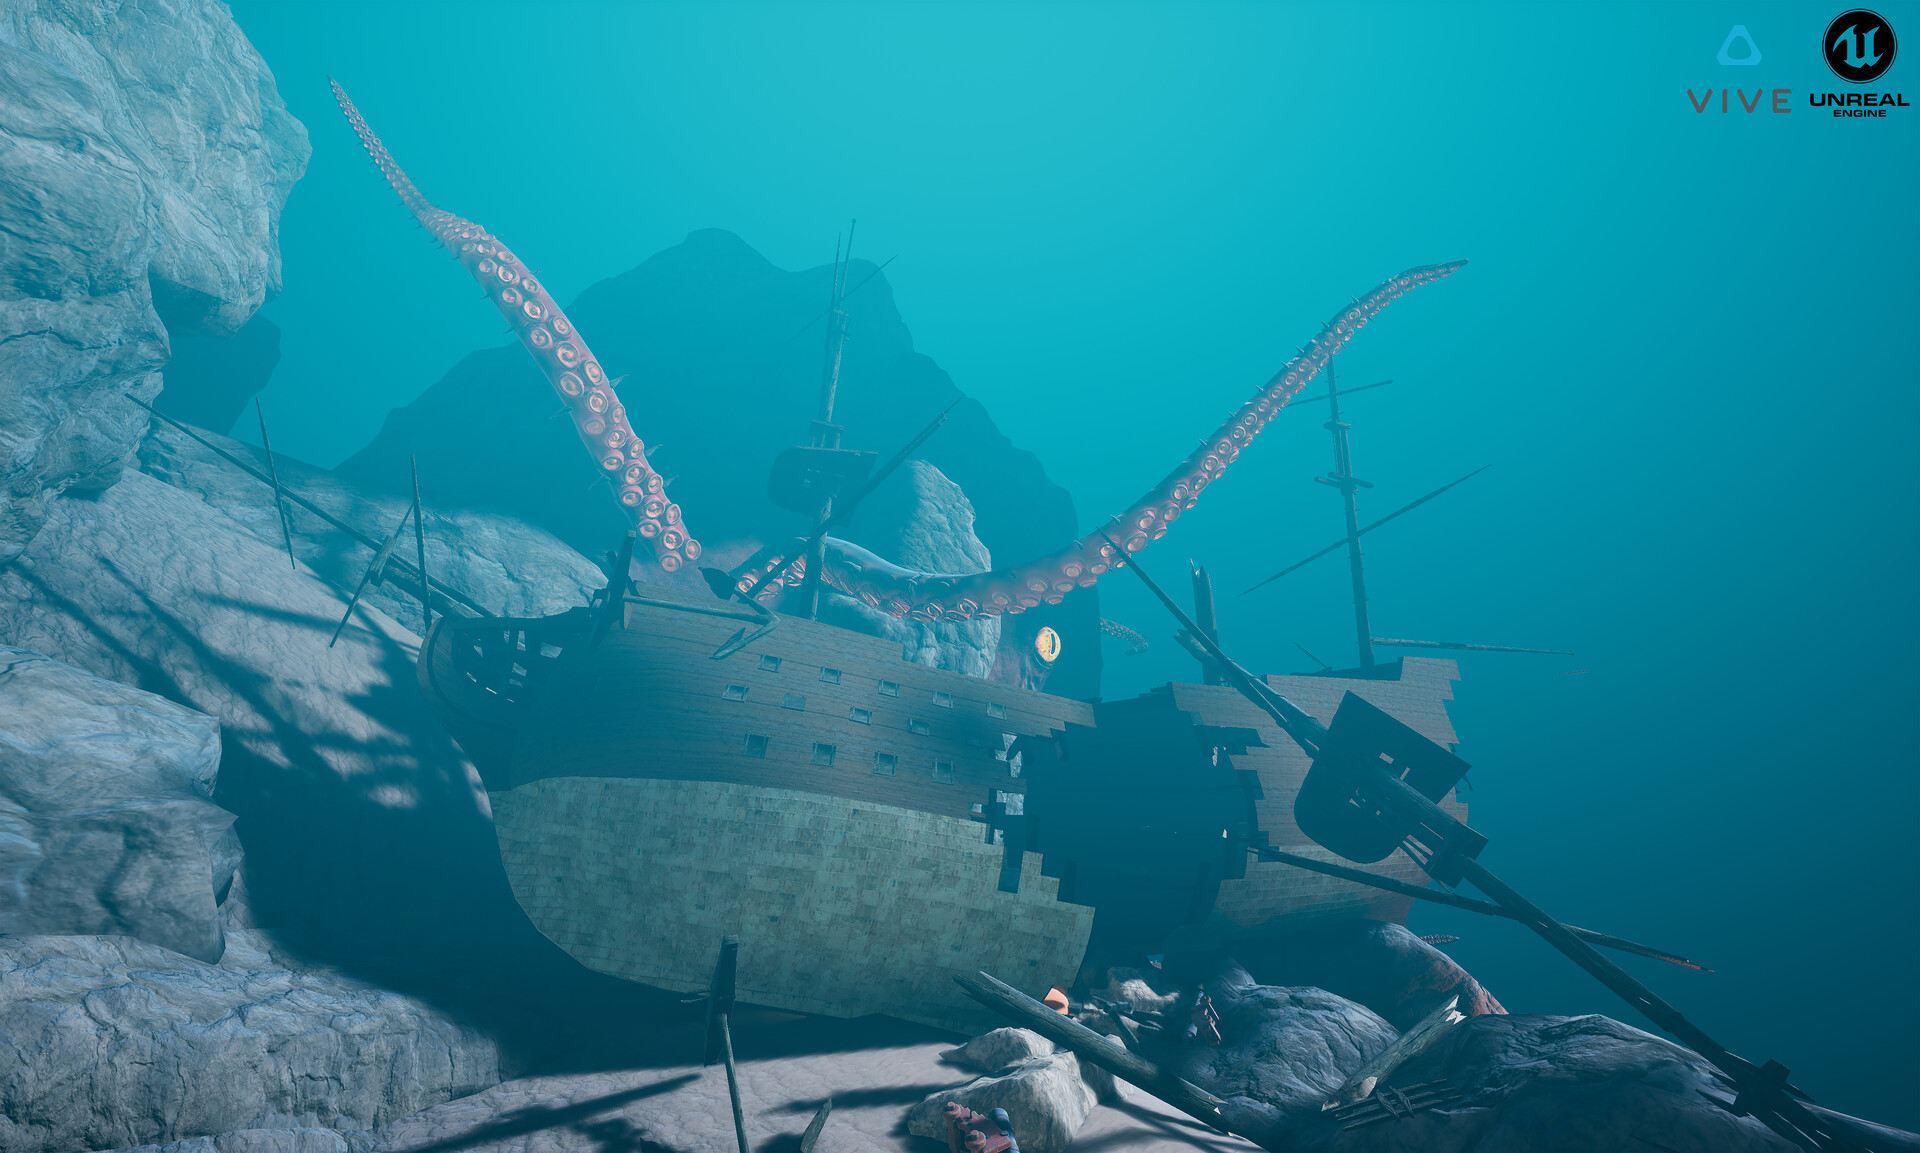 An environment screenshot of the gryphon being attacked by a giant octopus